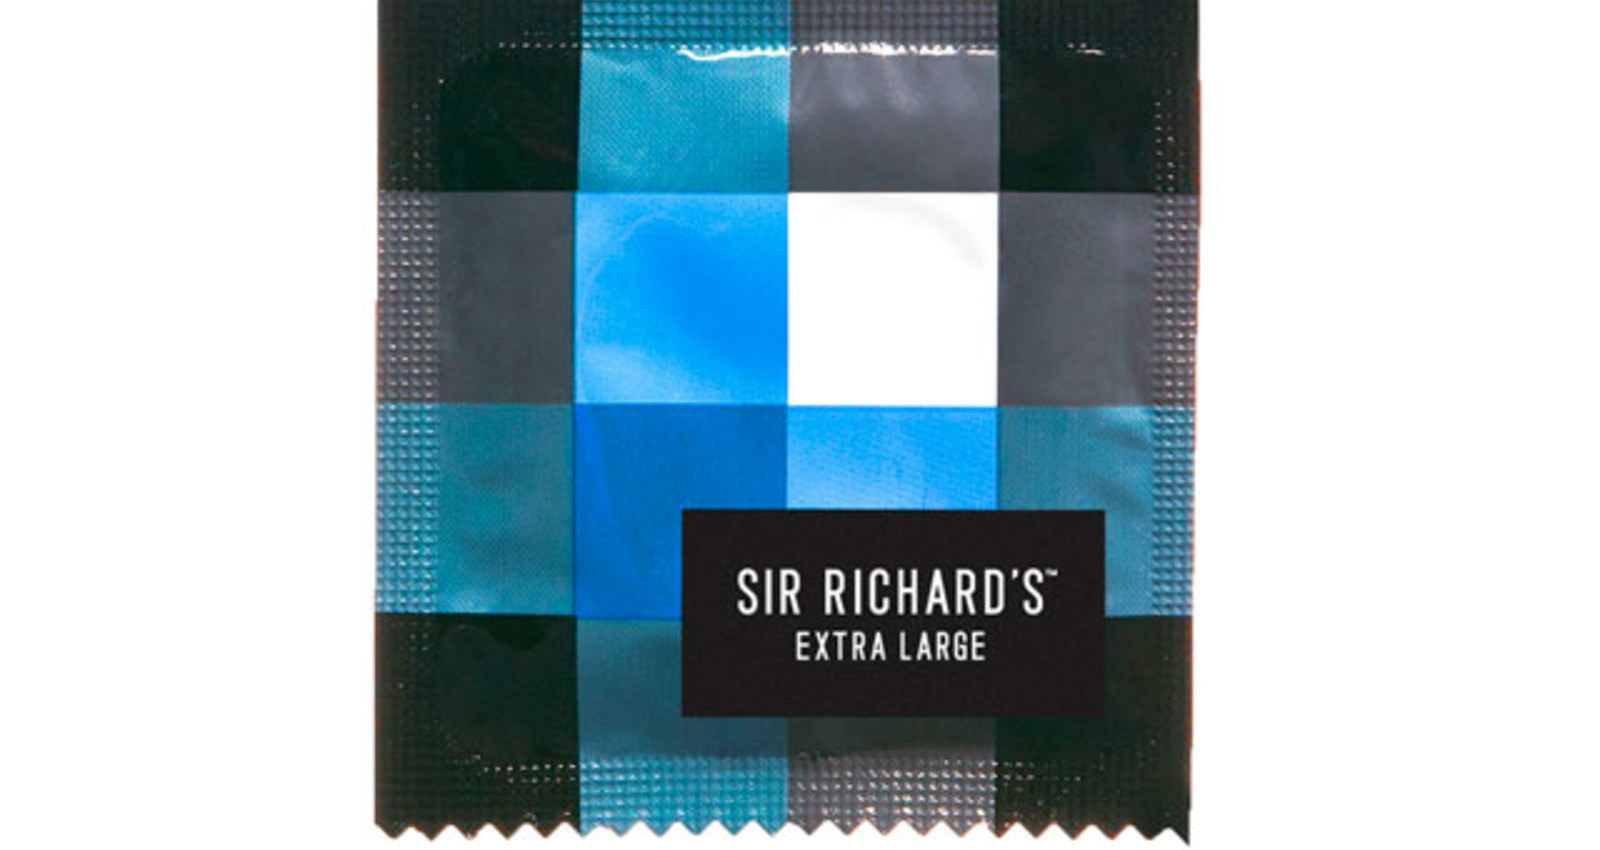 Sir Richard's Package Design